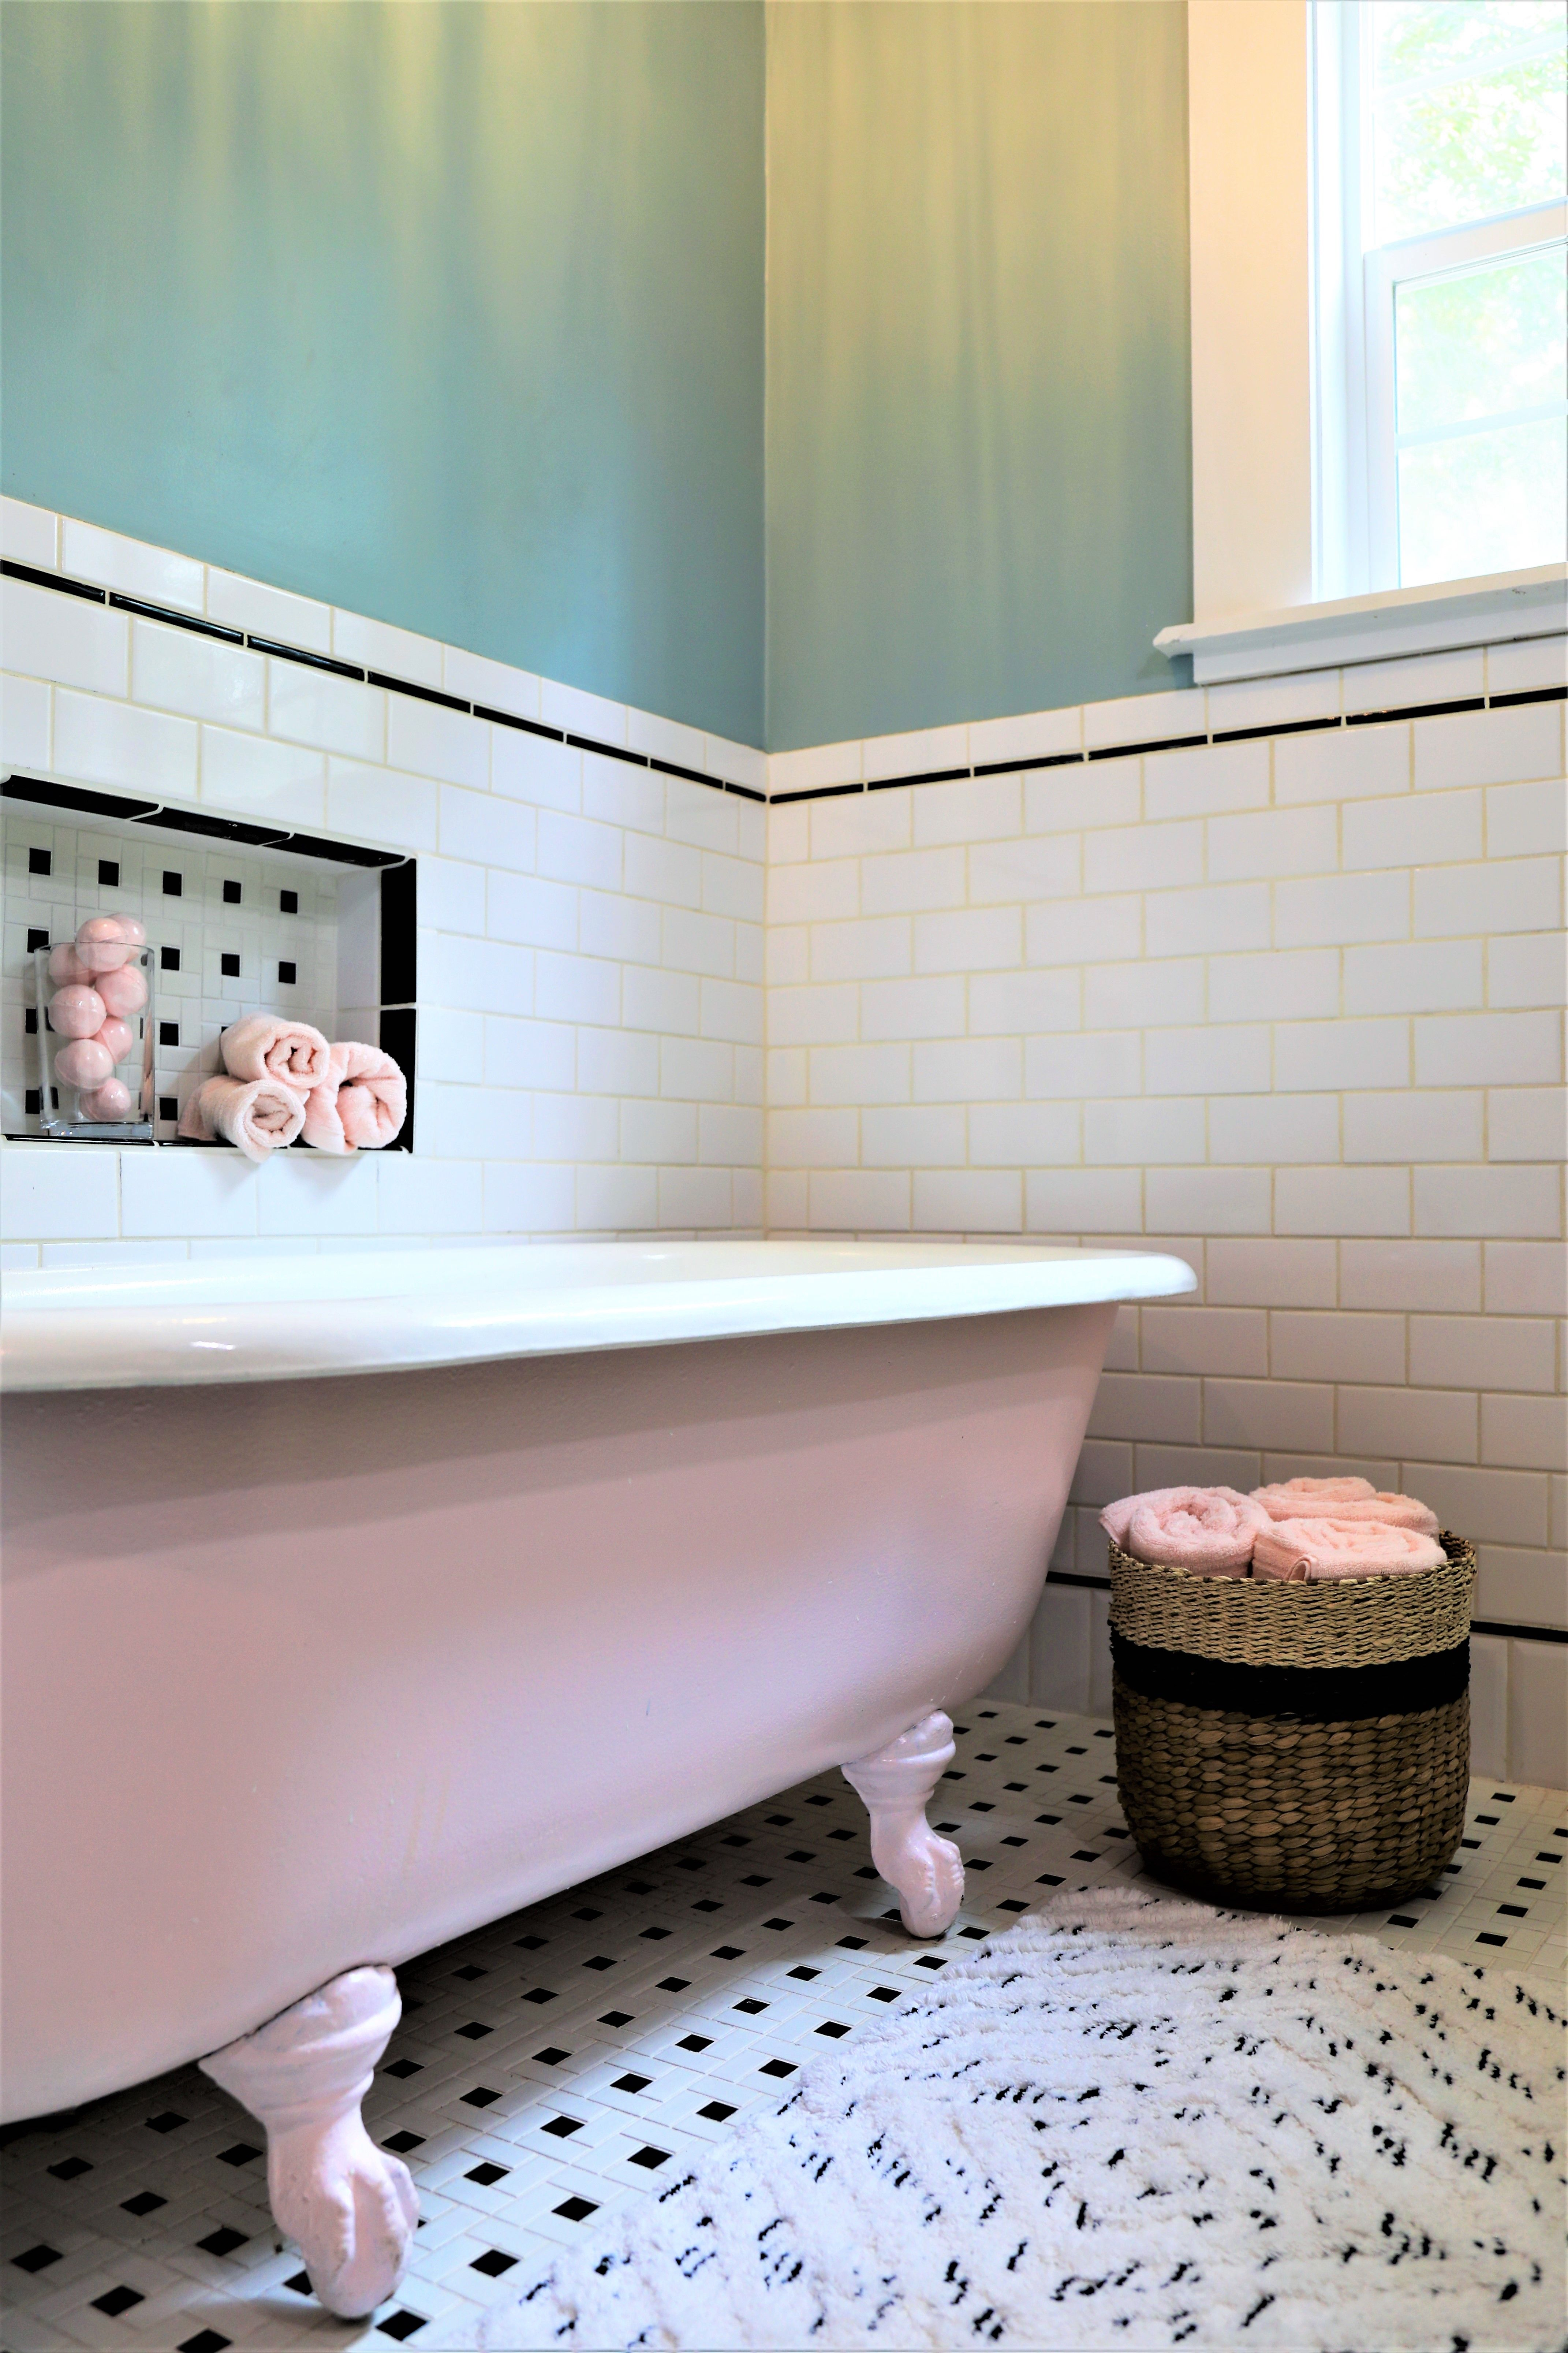 Before After A 100 Year Old House Gets A New Life Old Home Remodel House Bathroom Bathrooms Remodel